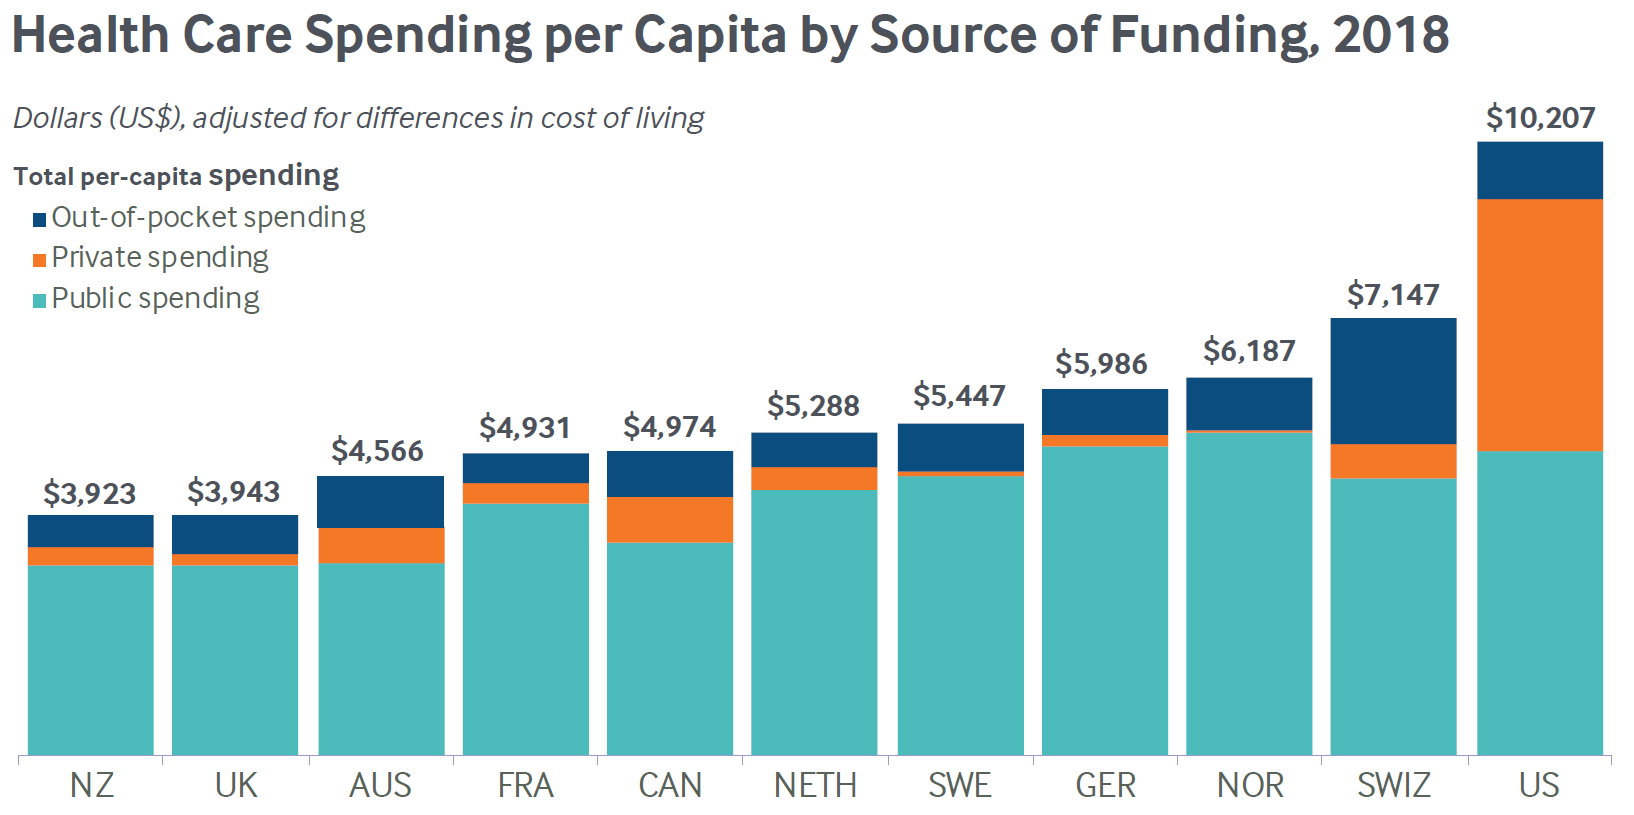 Health Care Spending per Capita by Source of Funding, 2018